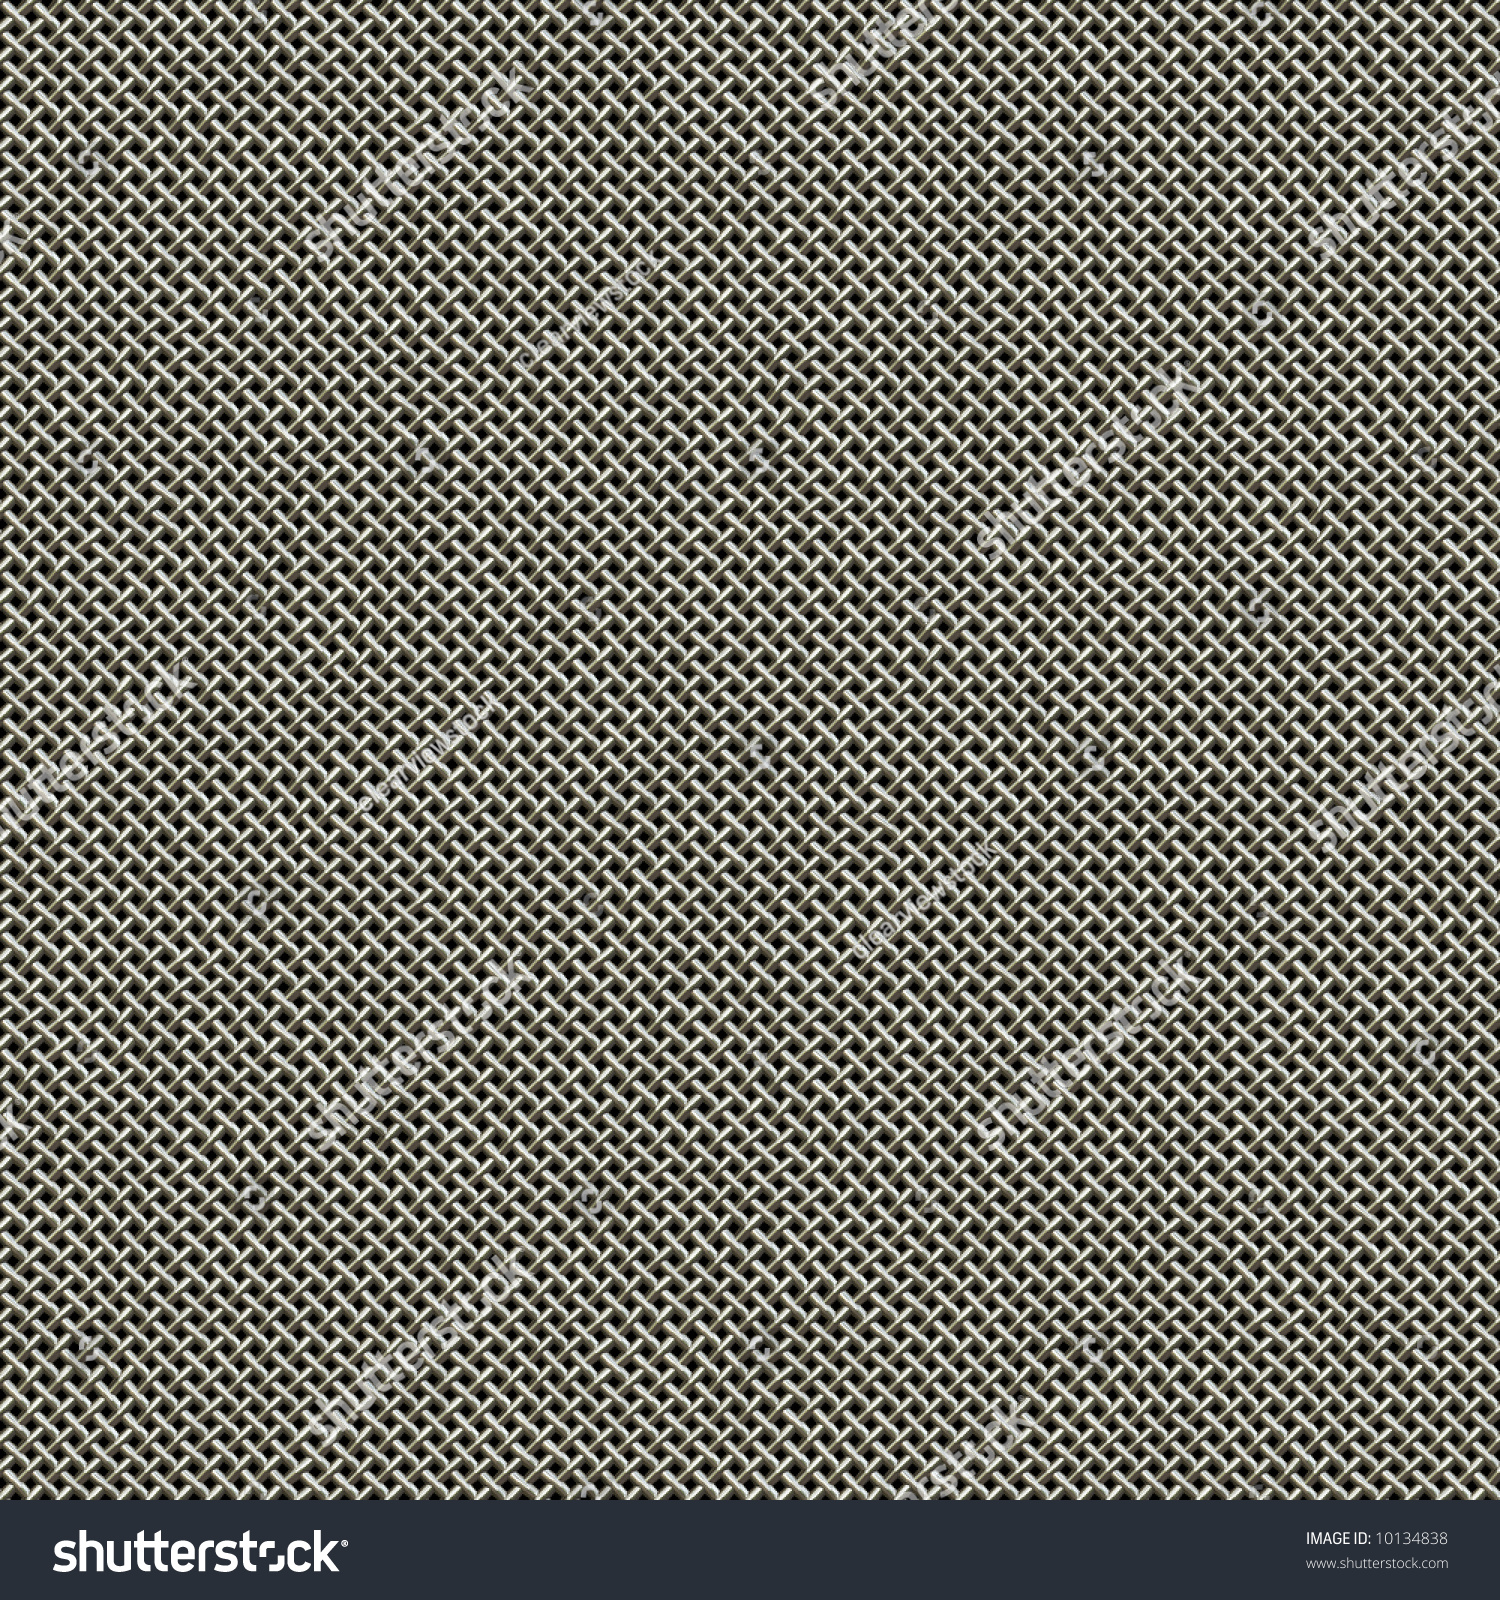 Seamless Background Image Woven Wire Mesh Stock Illustration ...